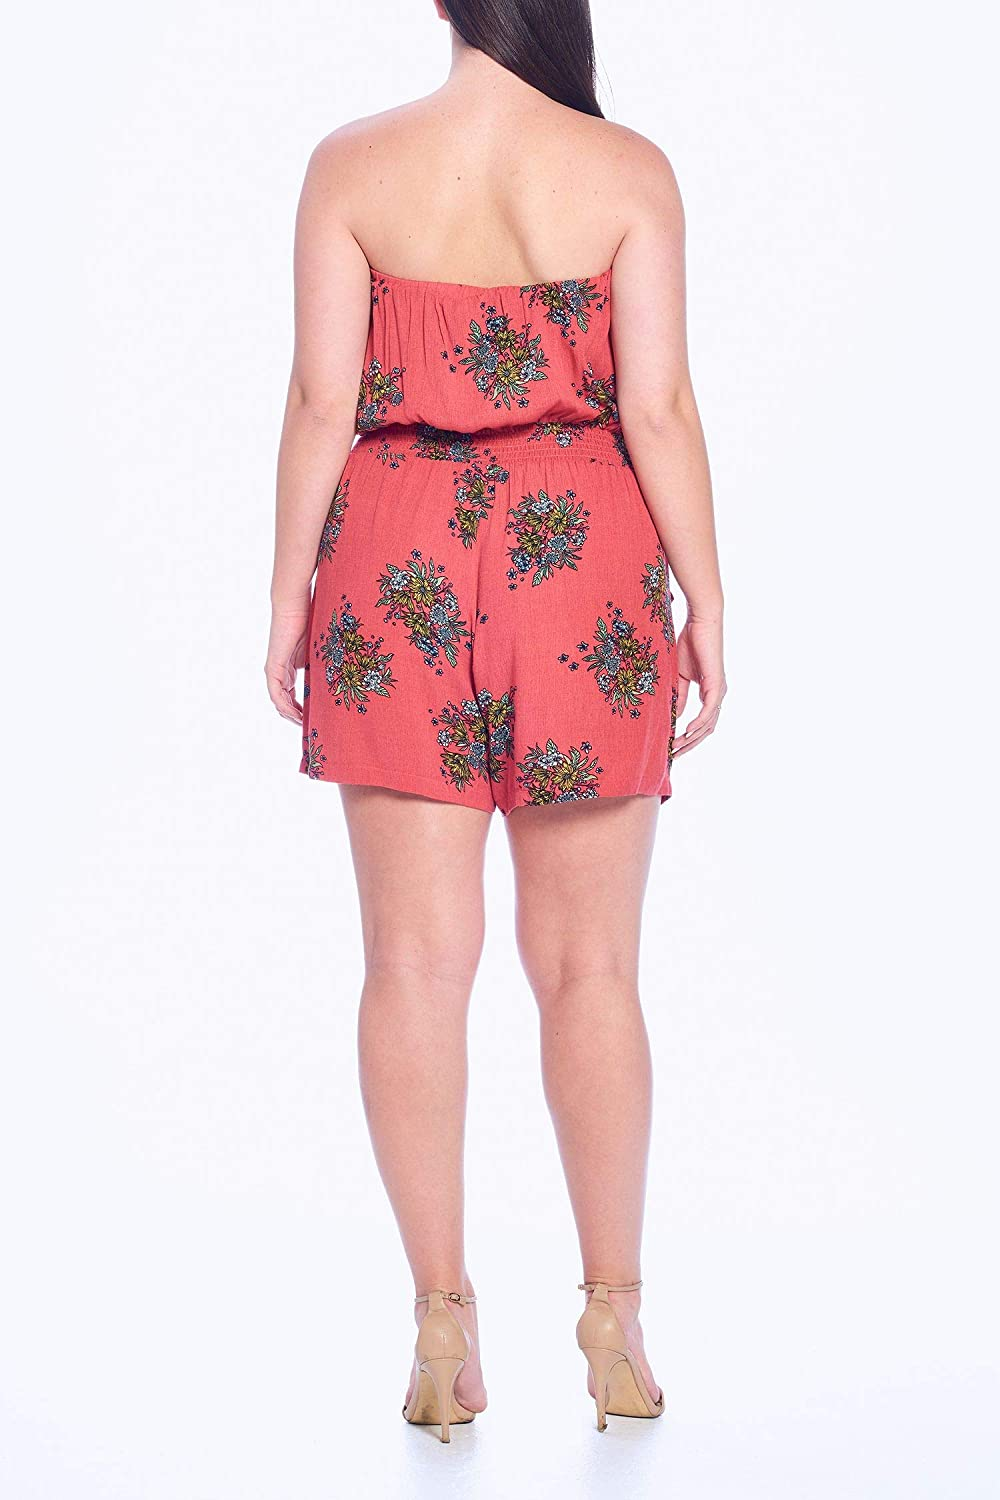 Wild Jasmine Womens Junior Plus Size Floral Print Surplice Short Rompers with Elastic Waist and Adjustable Cami Straps